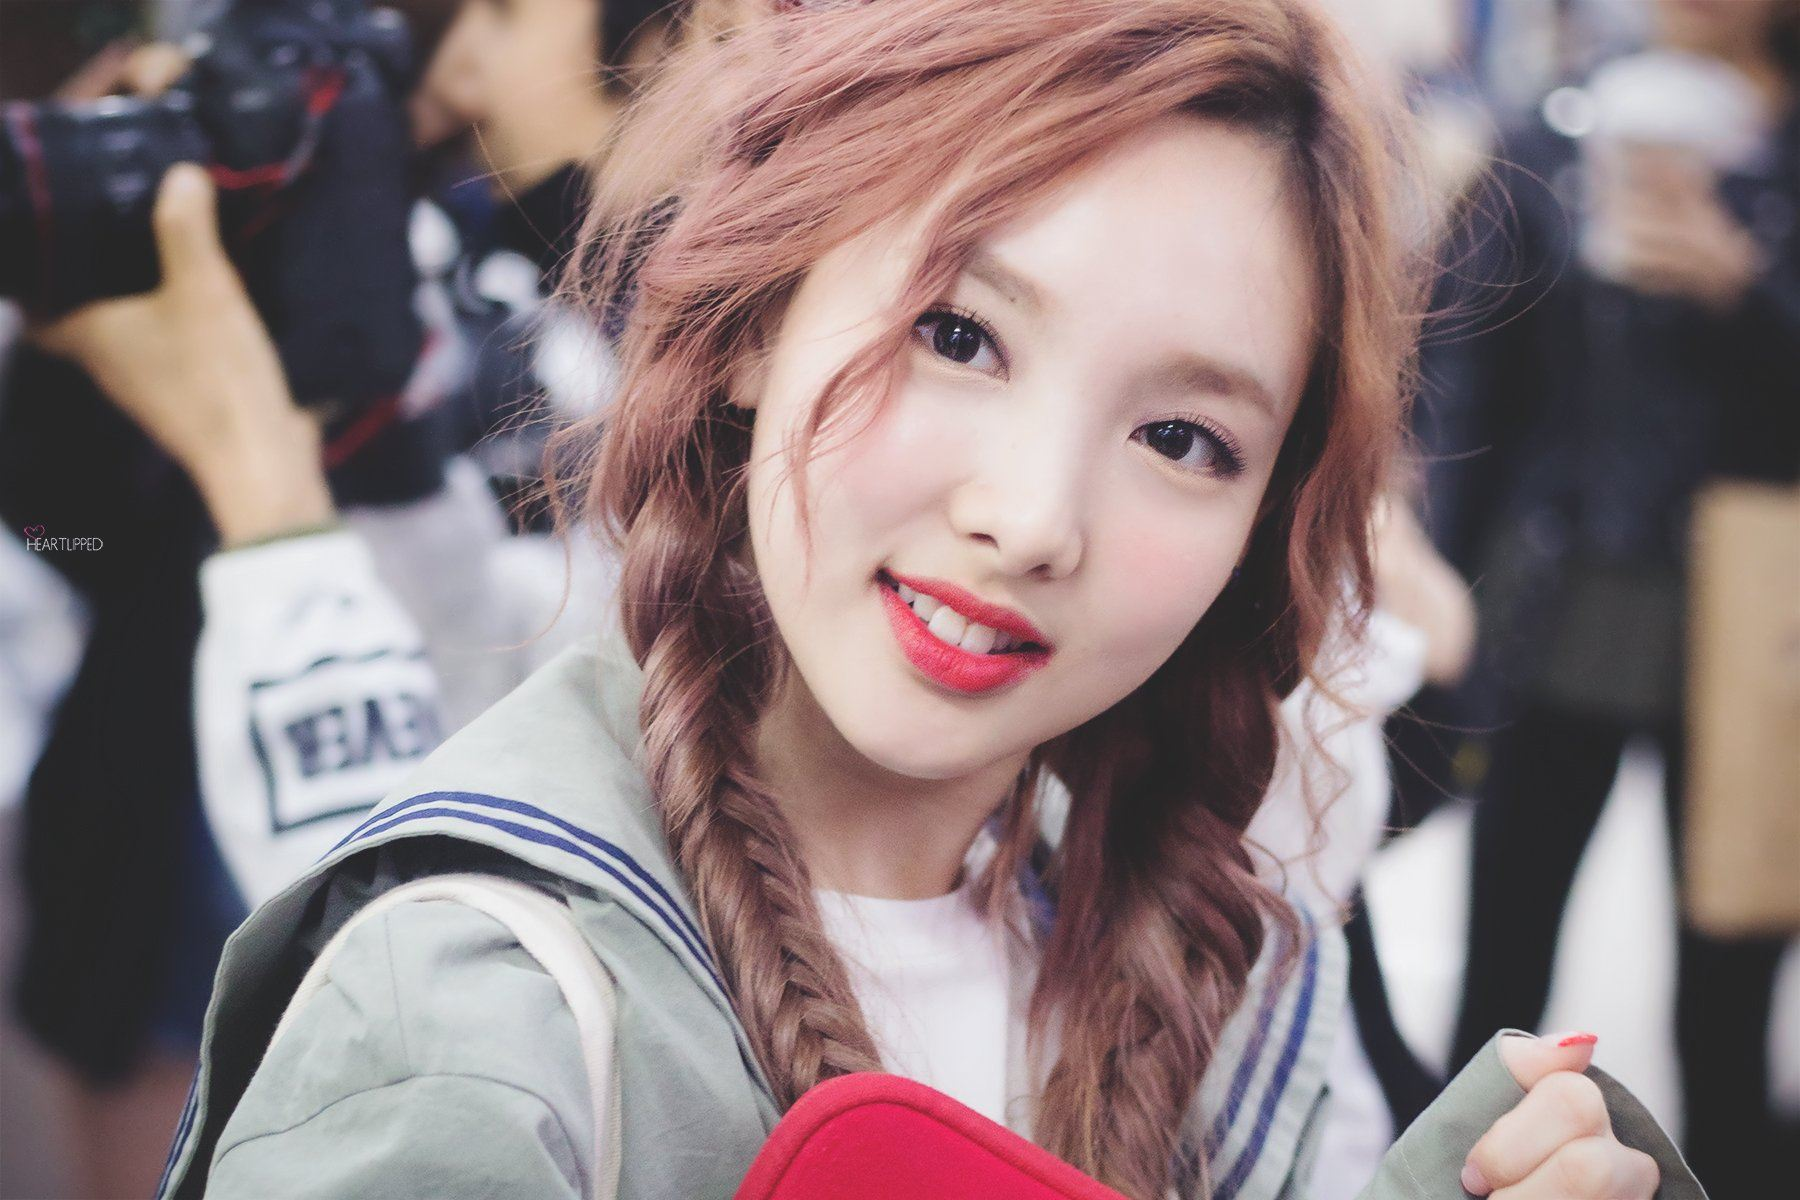 Twice Nayeon Just Dyed Her Hair Pink Here S What She Look